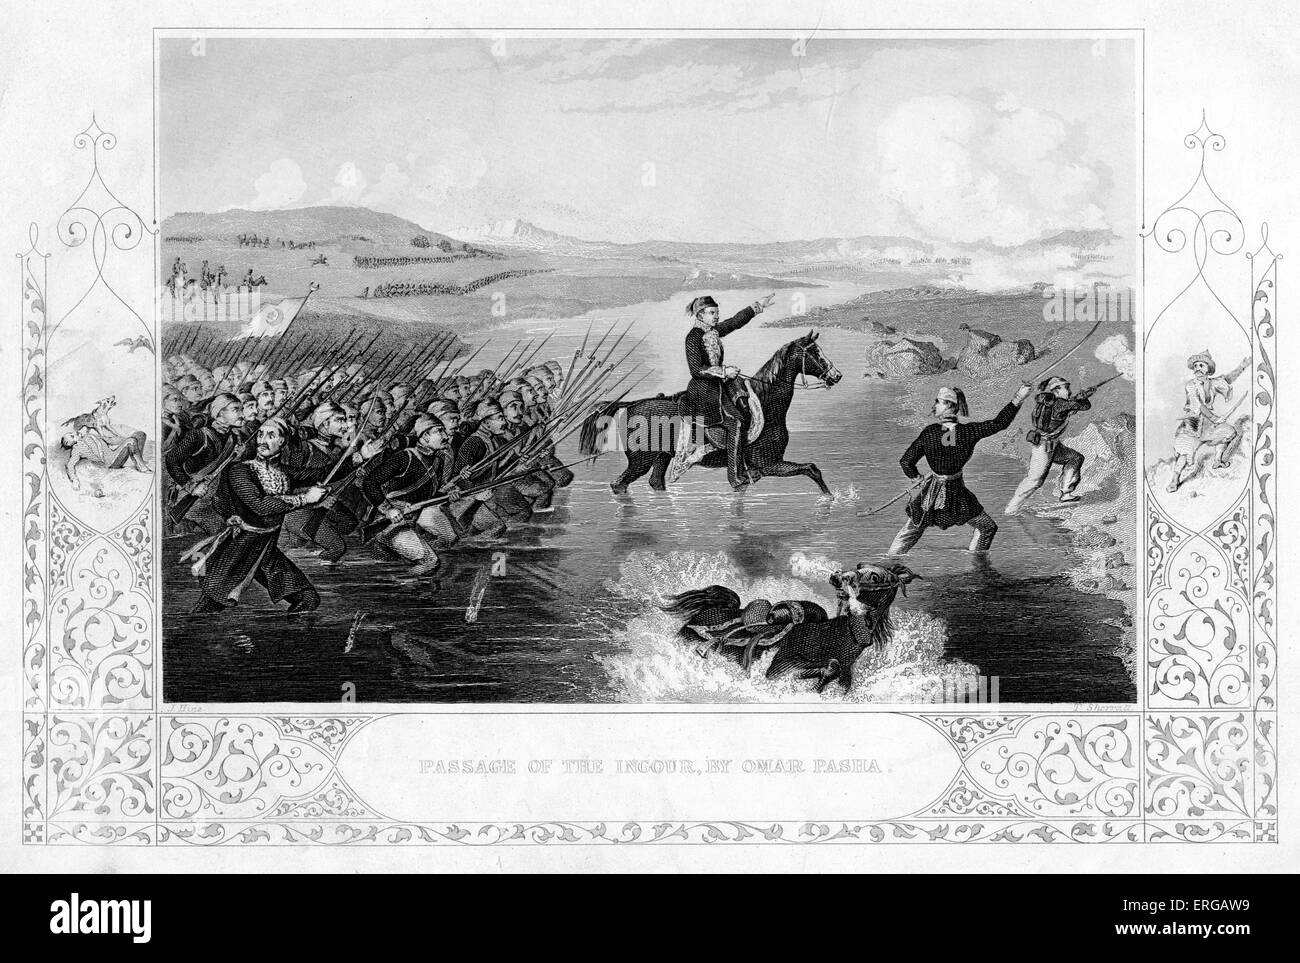 'Passage of the Ingour' by Omar Pasha (1806-1871) - scene from the Crimean War, 1854. Engraving by T. Sherratt. - Stock Image